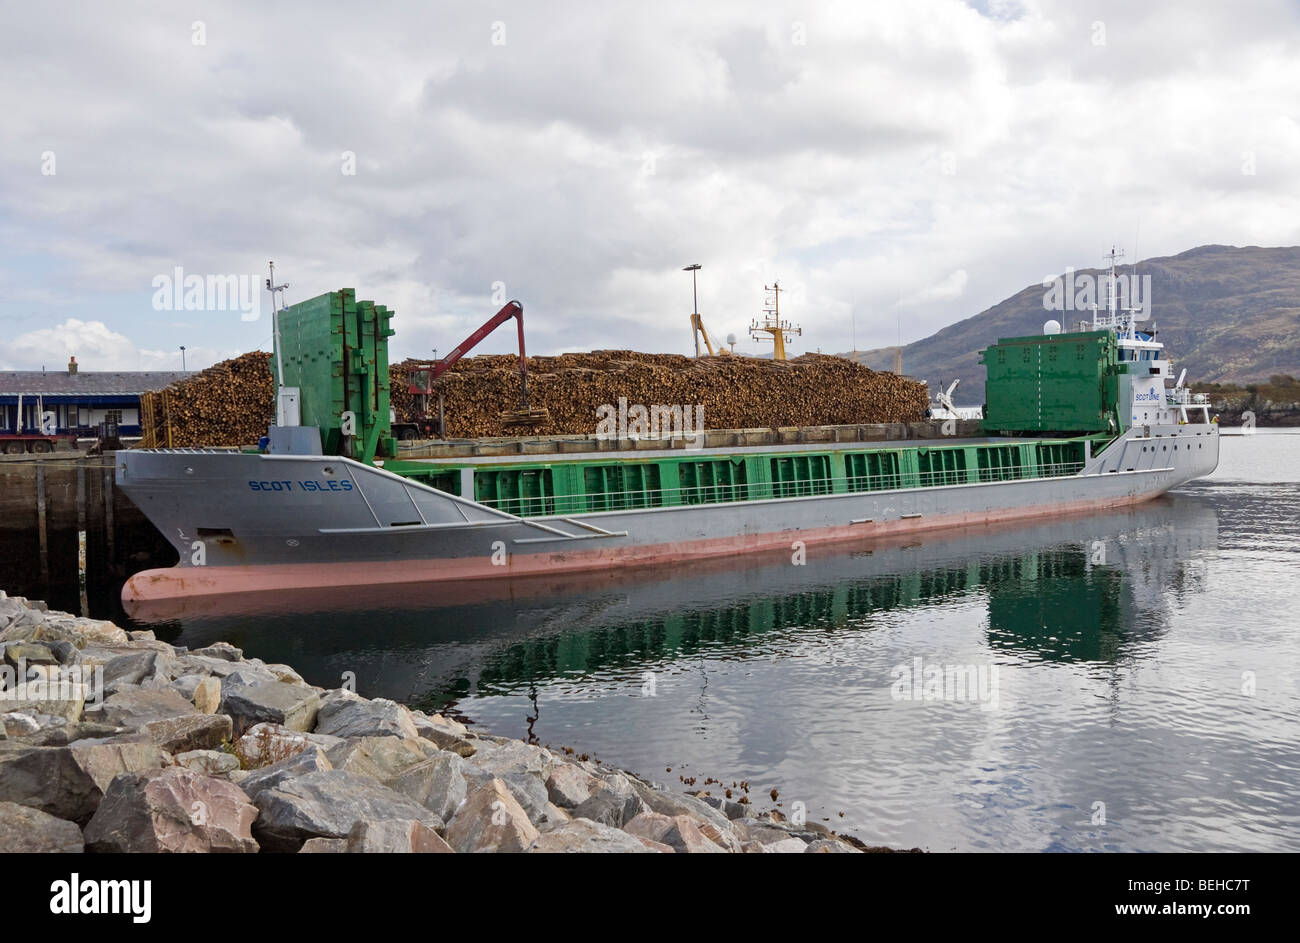 Scot Isles loading timber in Kyle of Lochalsh harbour Scotland - Stock Image